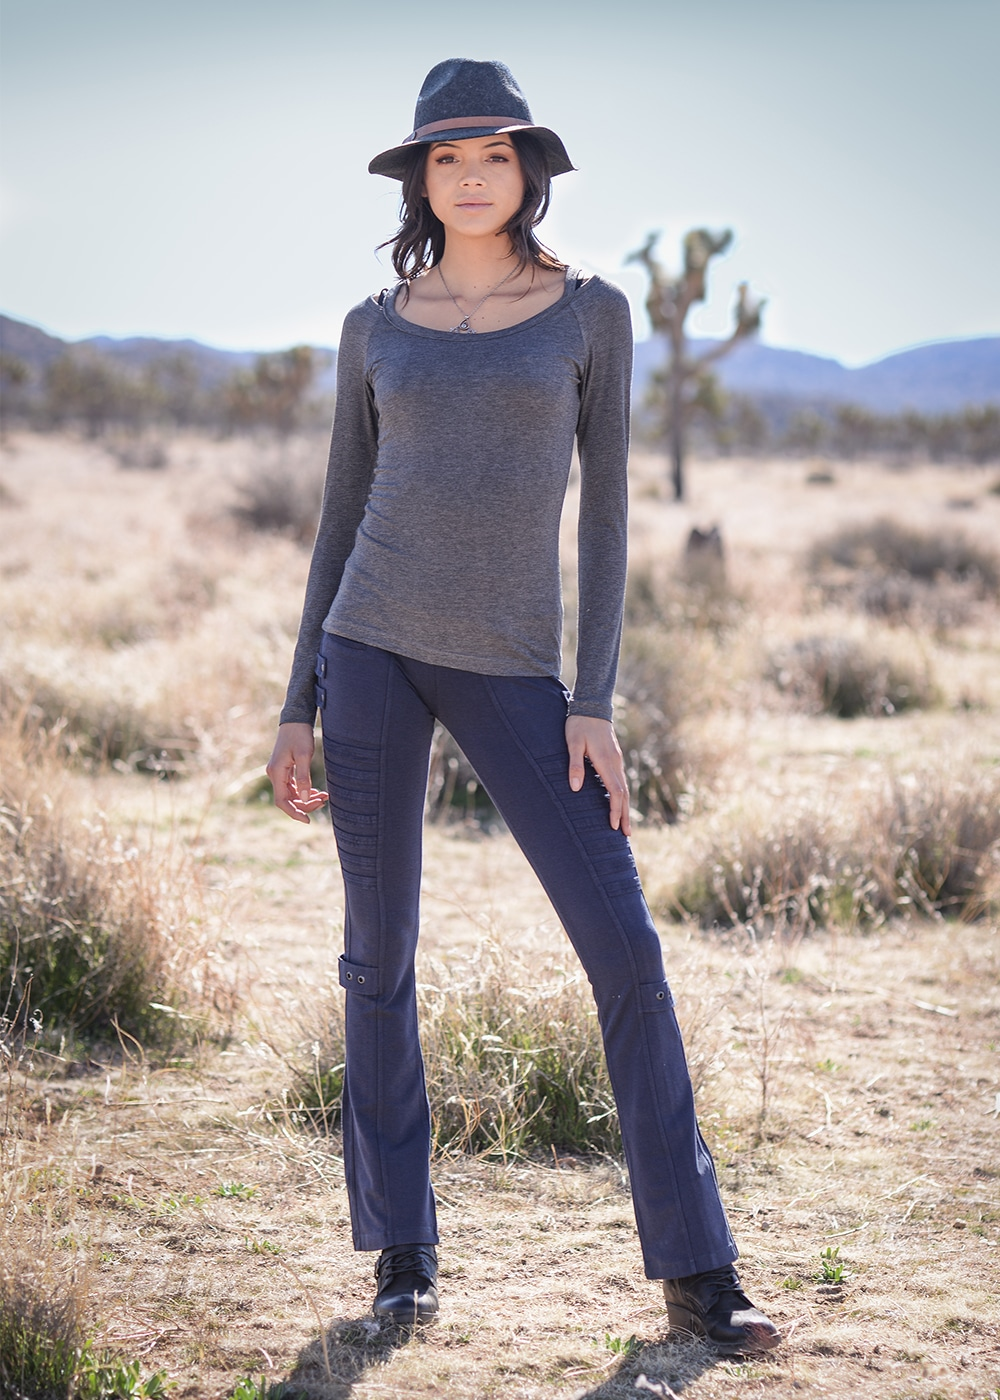 Bamboo and Organic Cotton Simplicity Tee in Grey by Nomads Hemp Wear Full Body